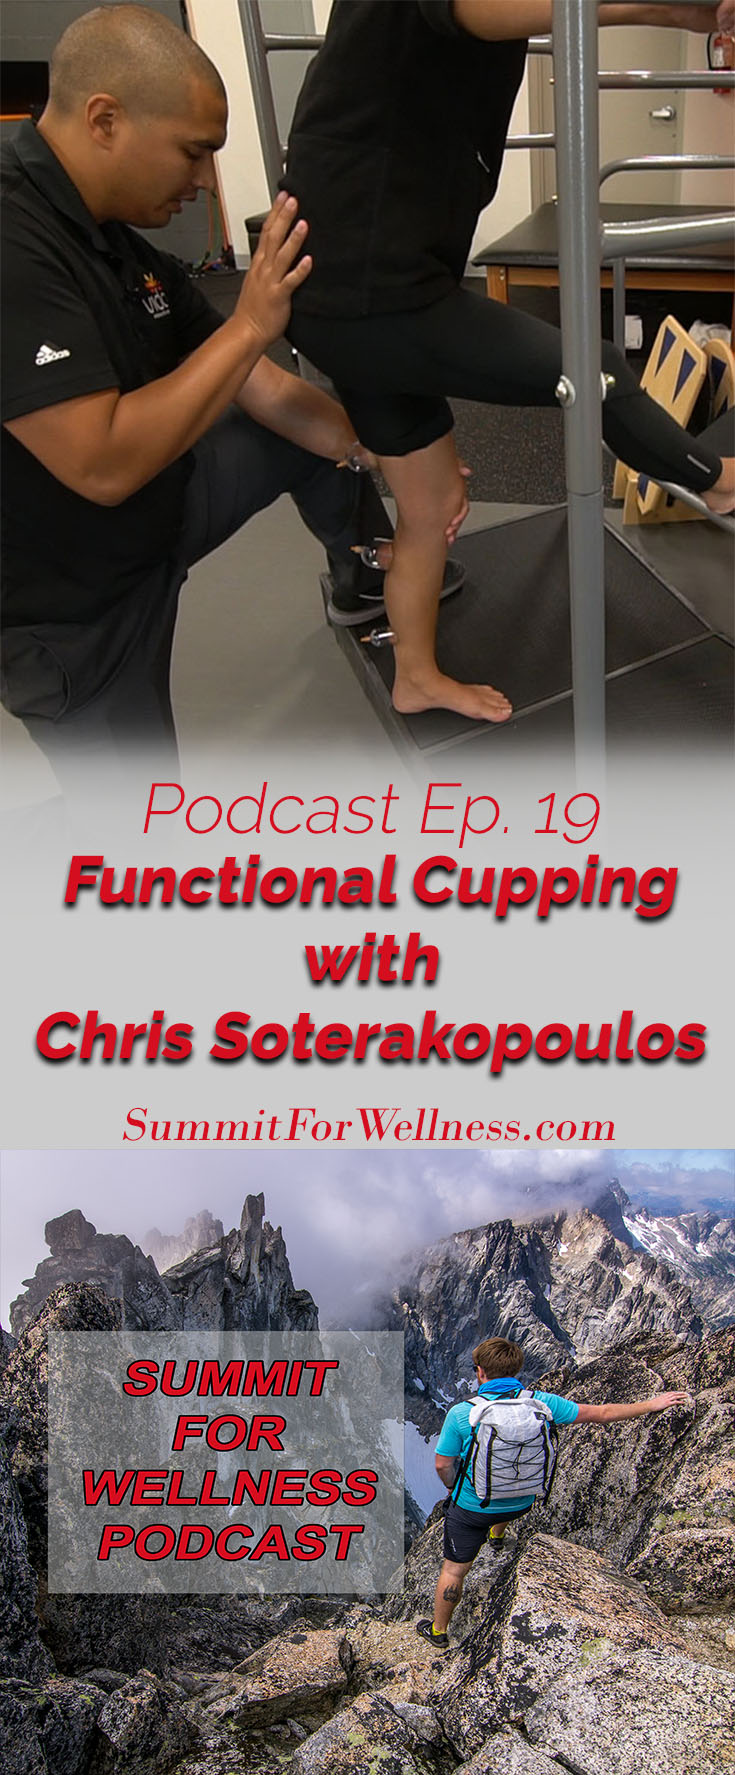 Chris Soterakopoulos talks all about Functional Cupping